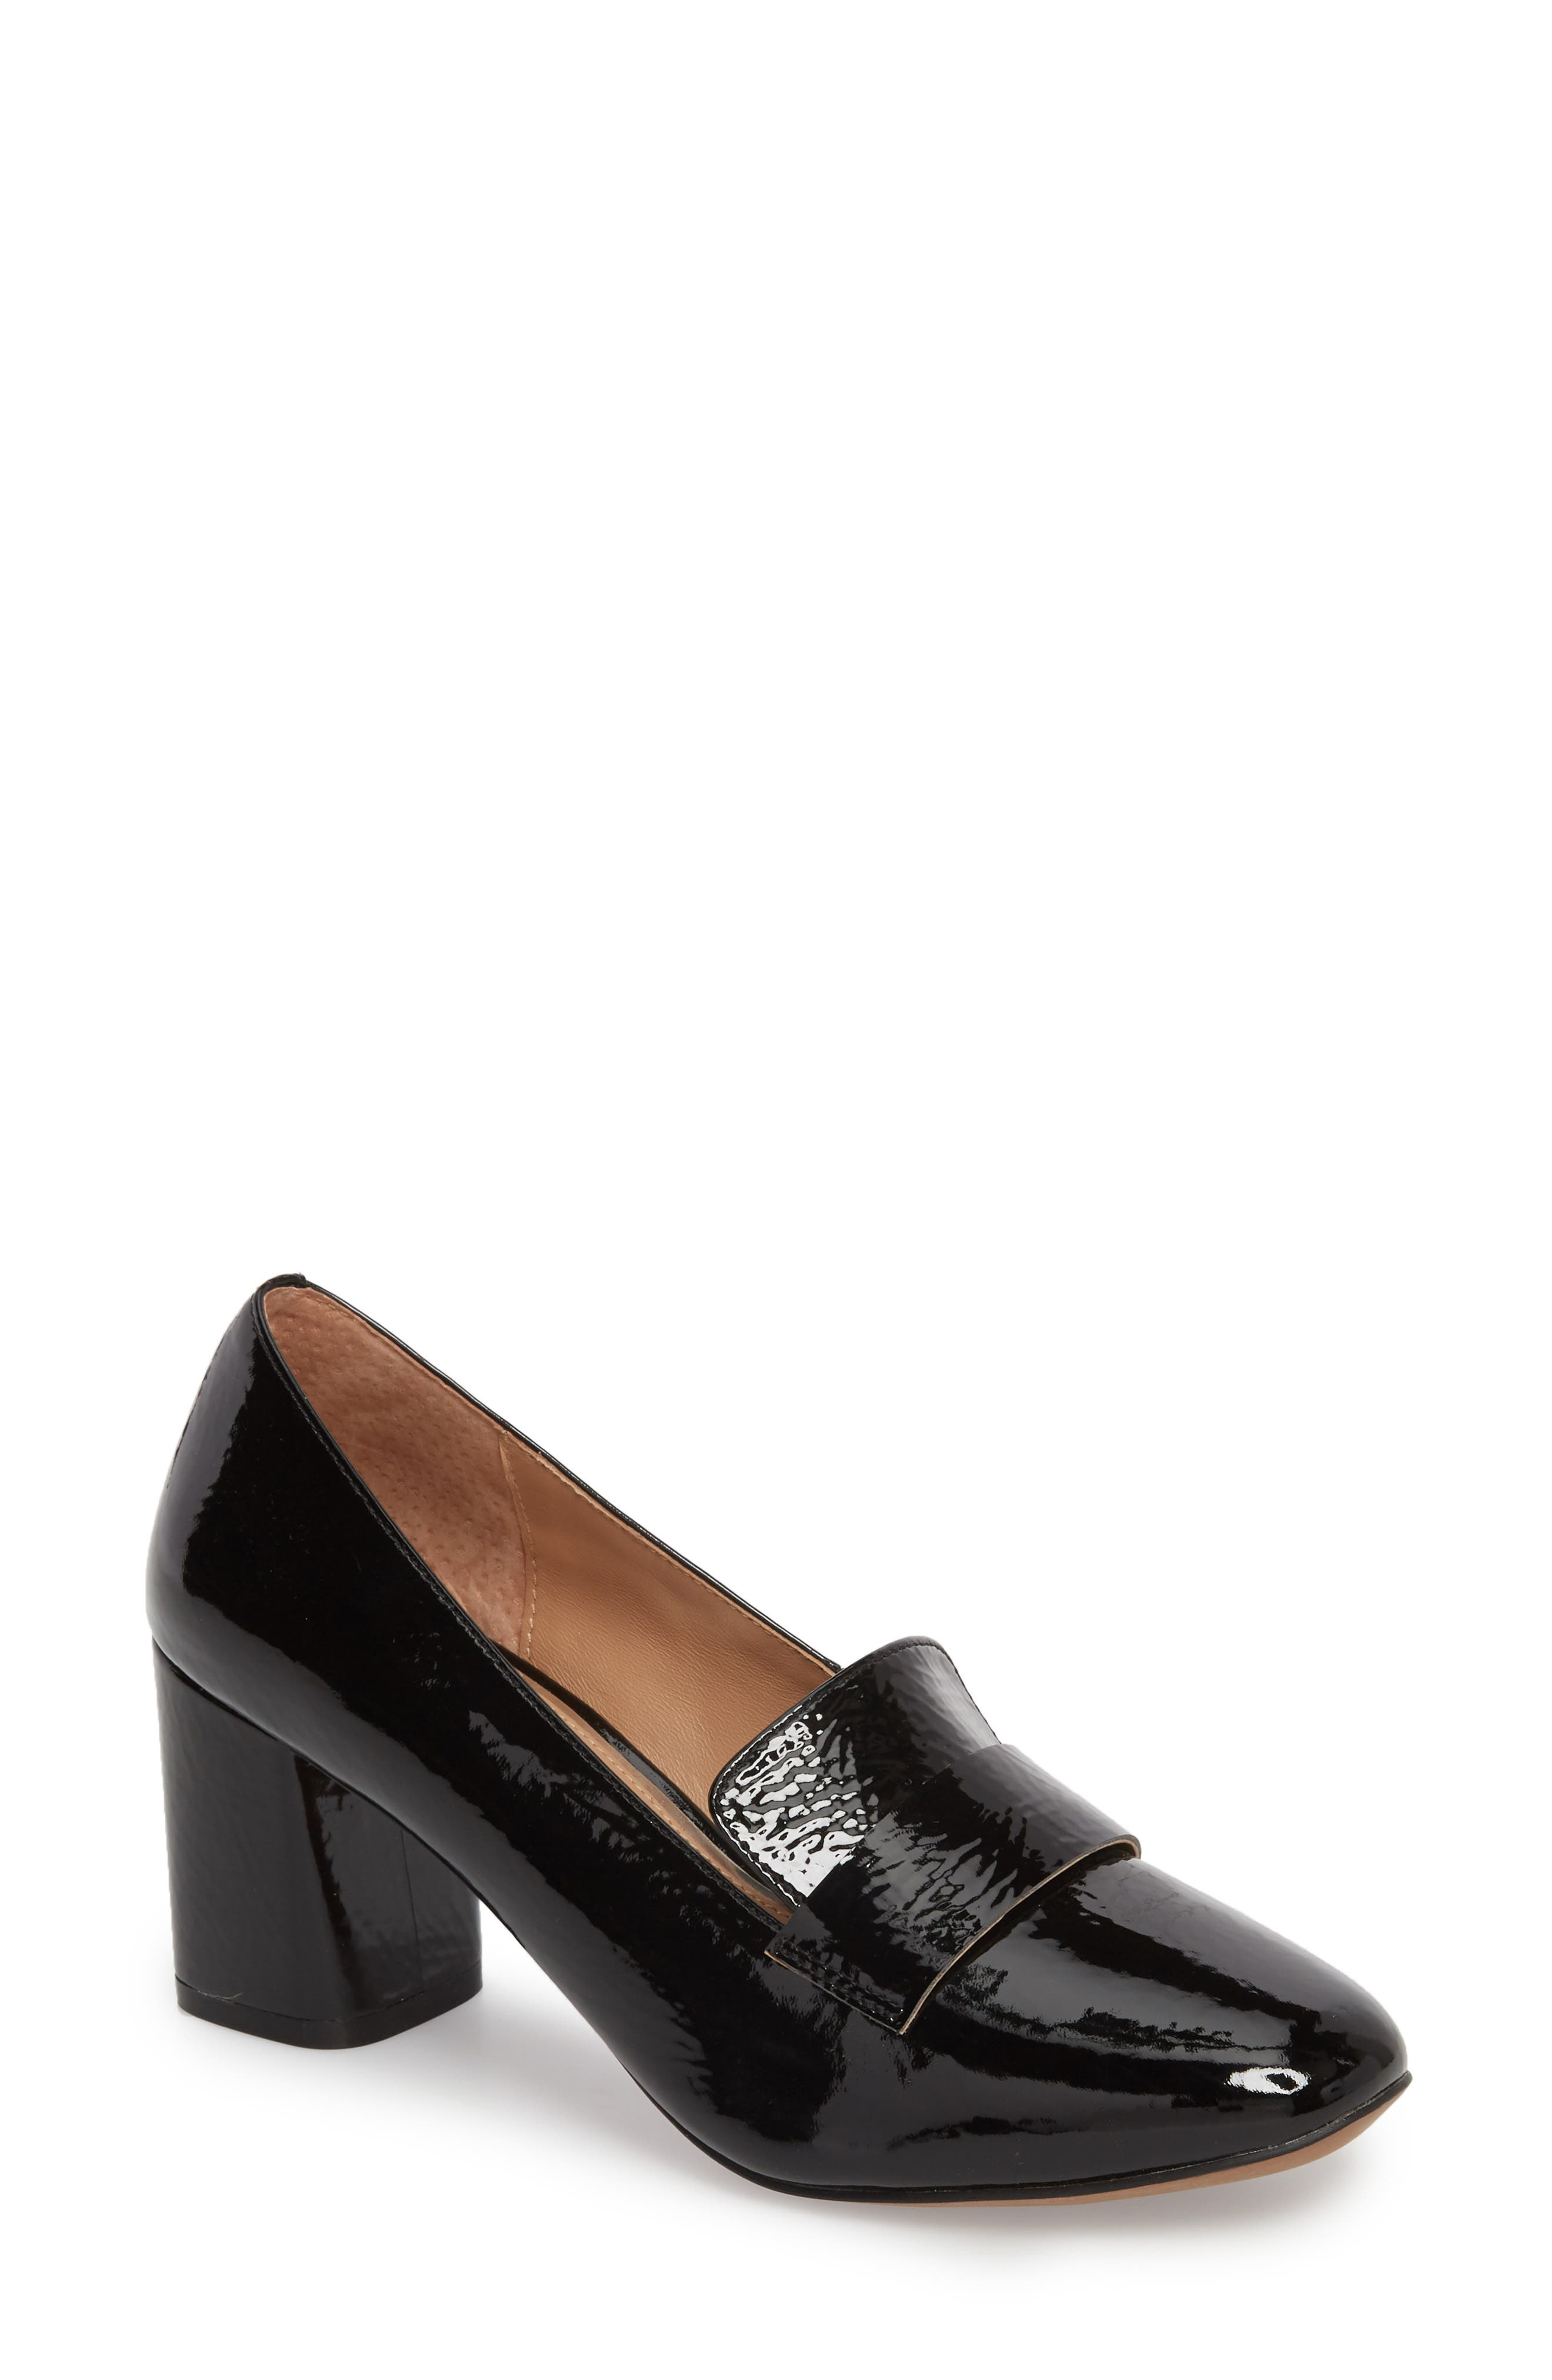 Camryn Loafer Pump,                             Main thumbnail 1, color,                             BLACK CRINKLE PATENT